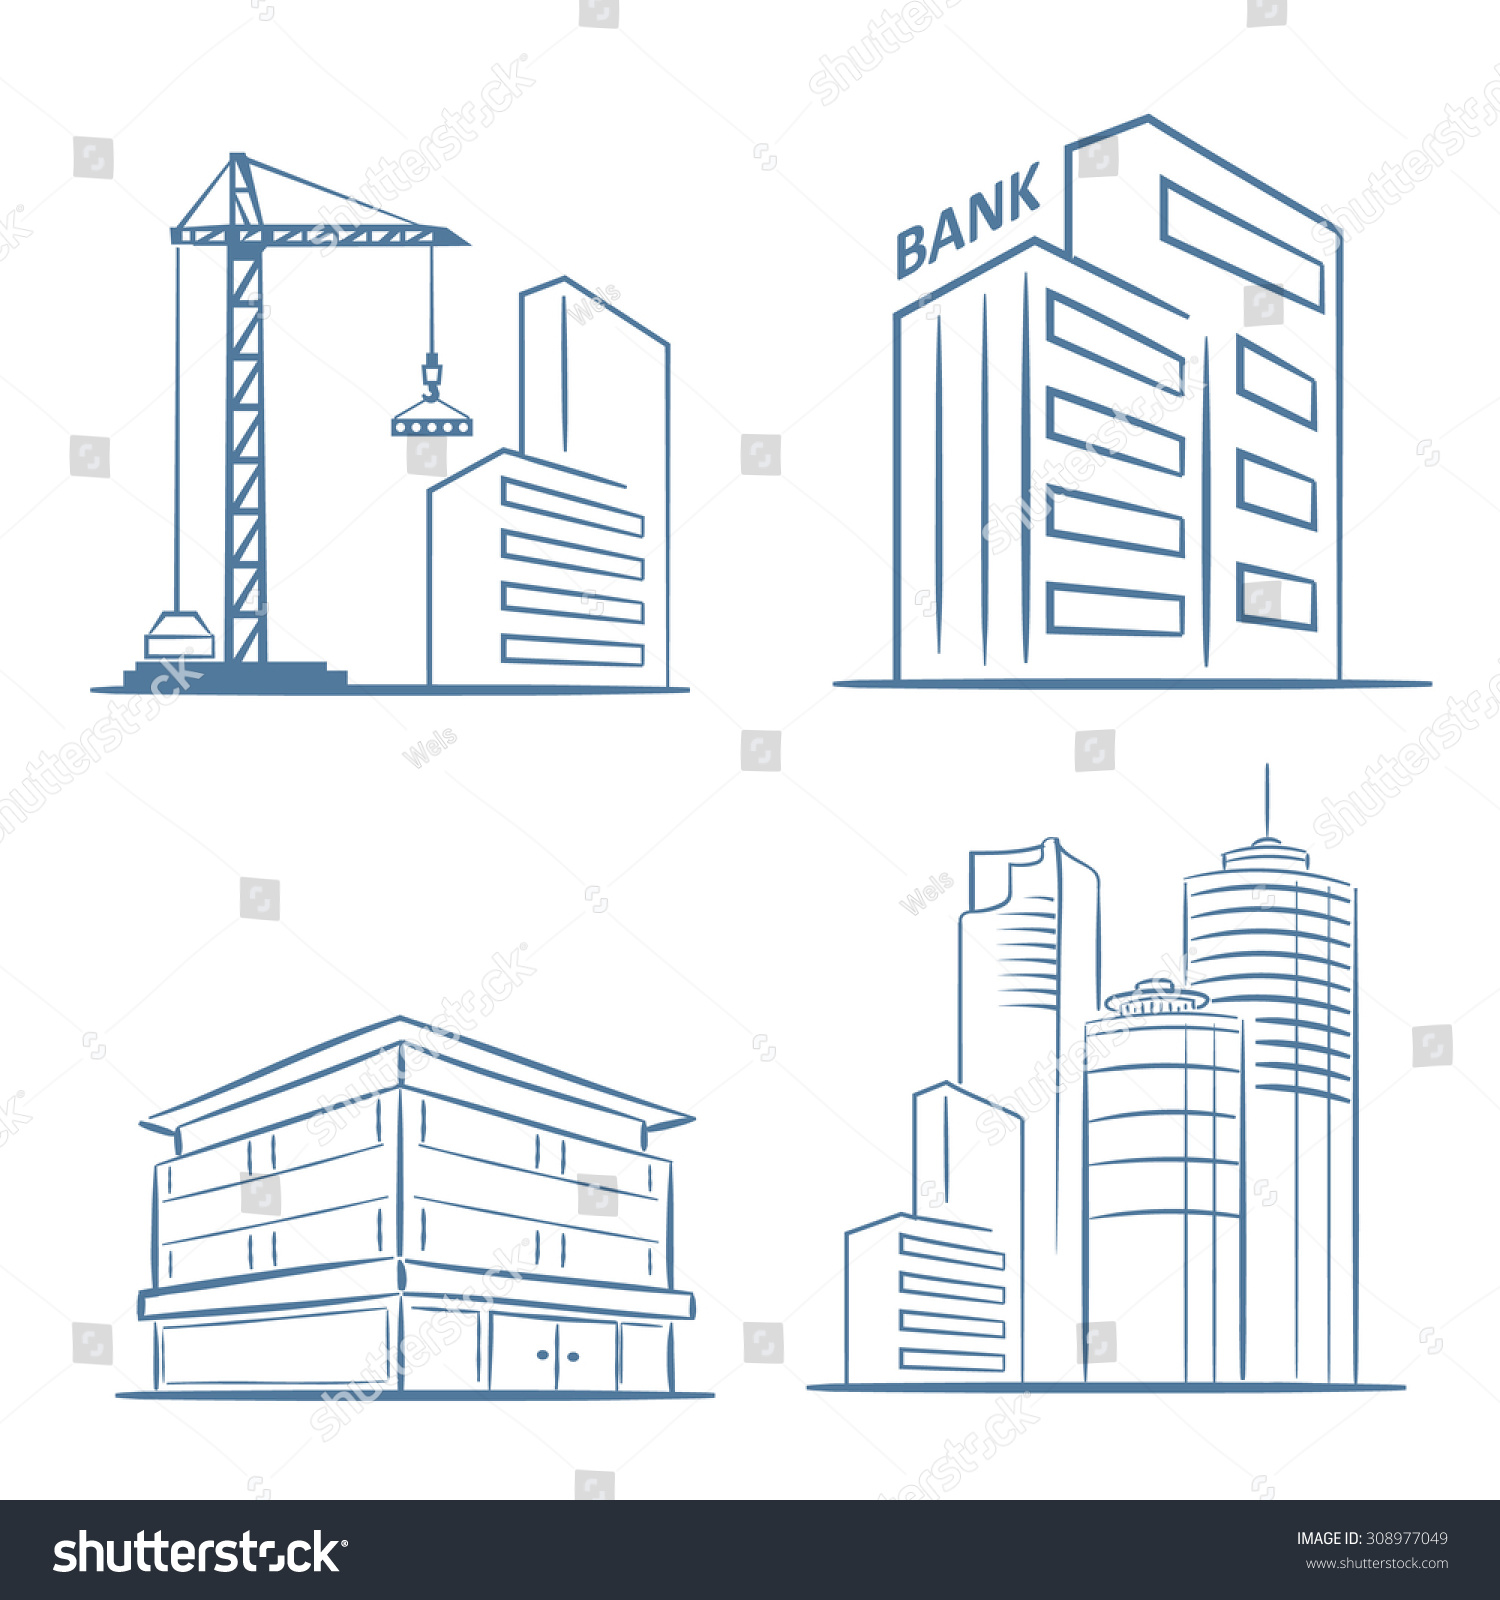 Commercial Real Estate Draft Graphic Design